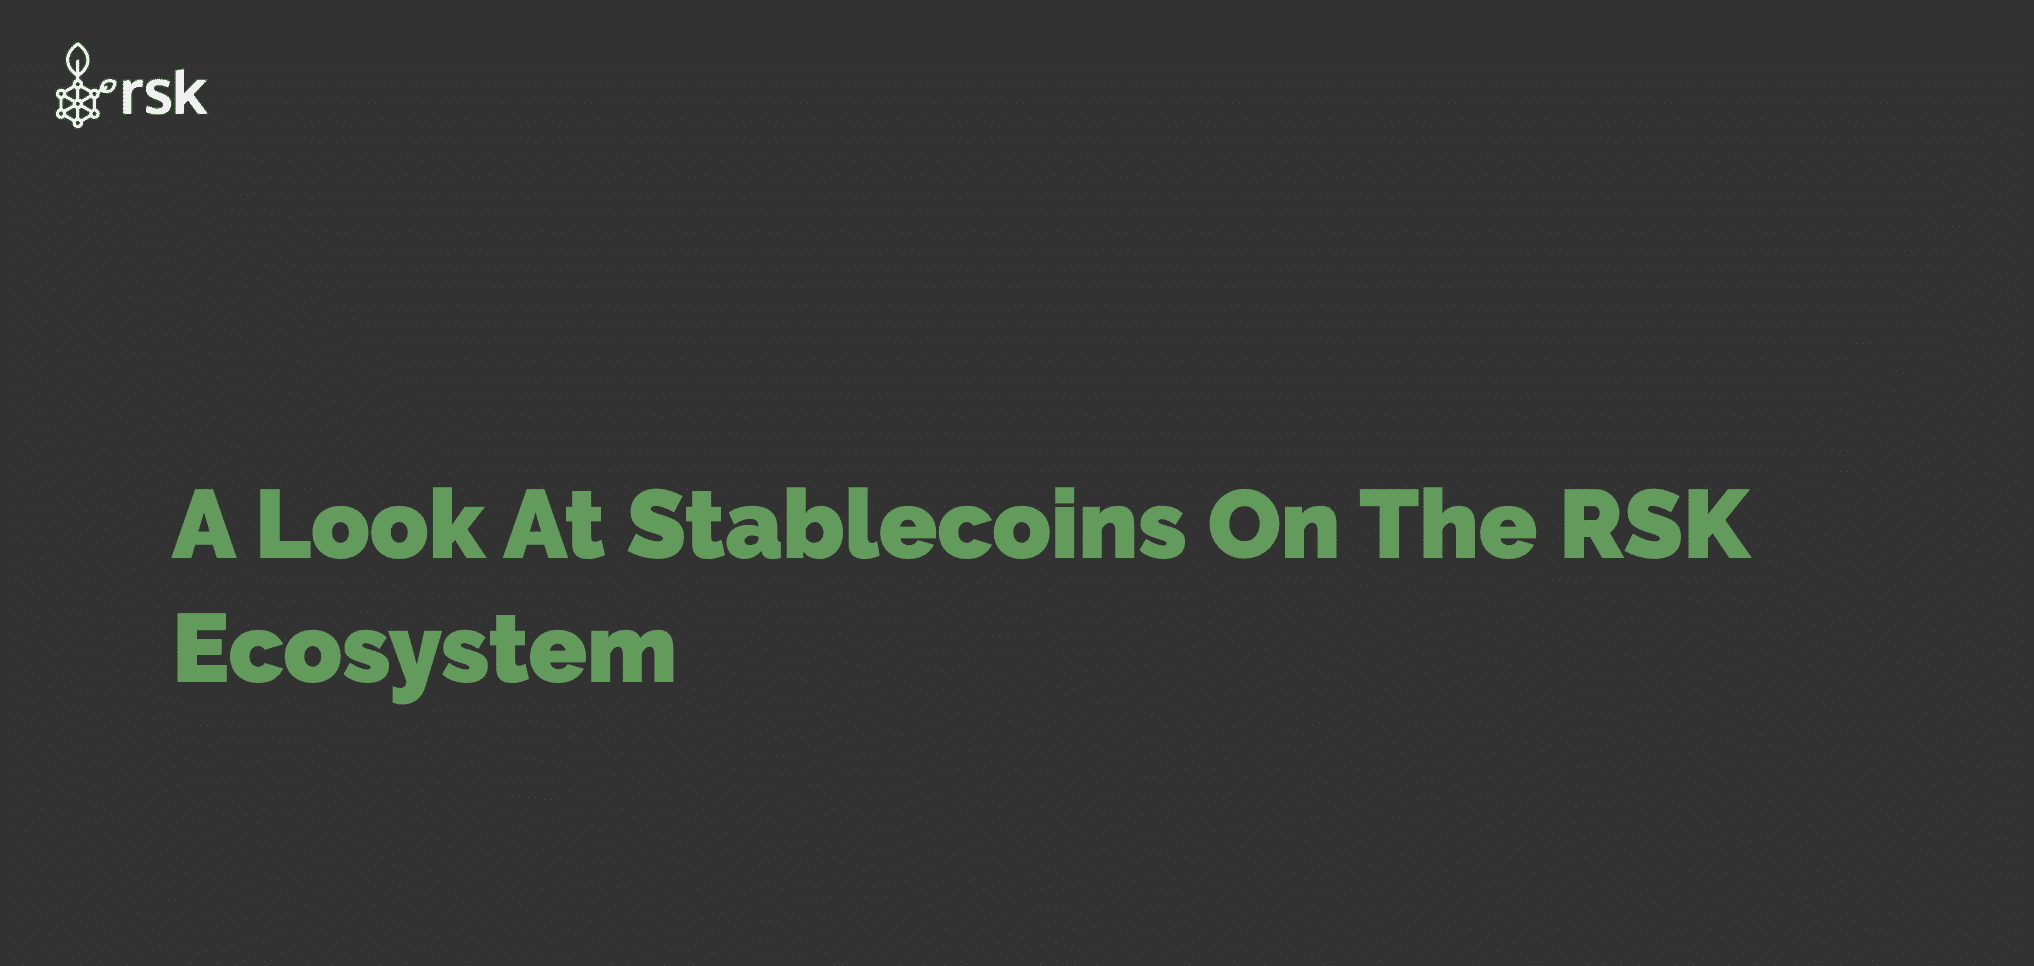 A Look At Stablecoins On The RSK Ecosystem